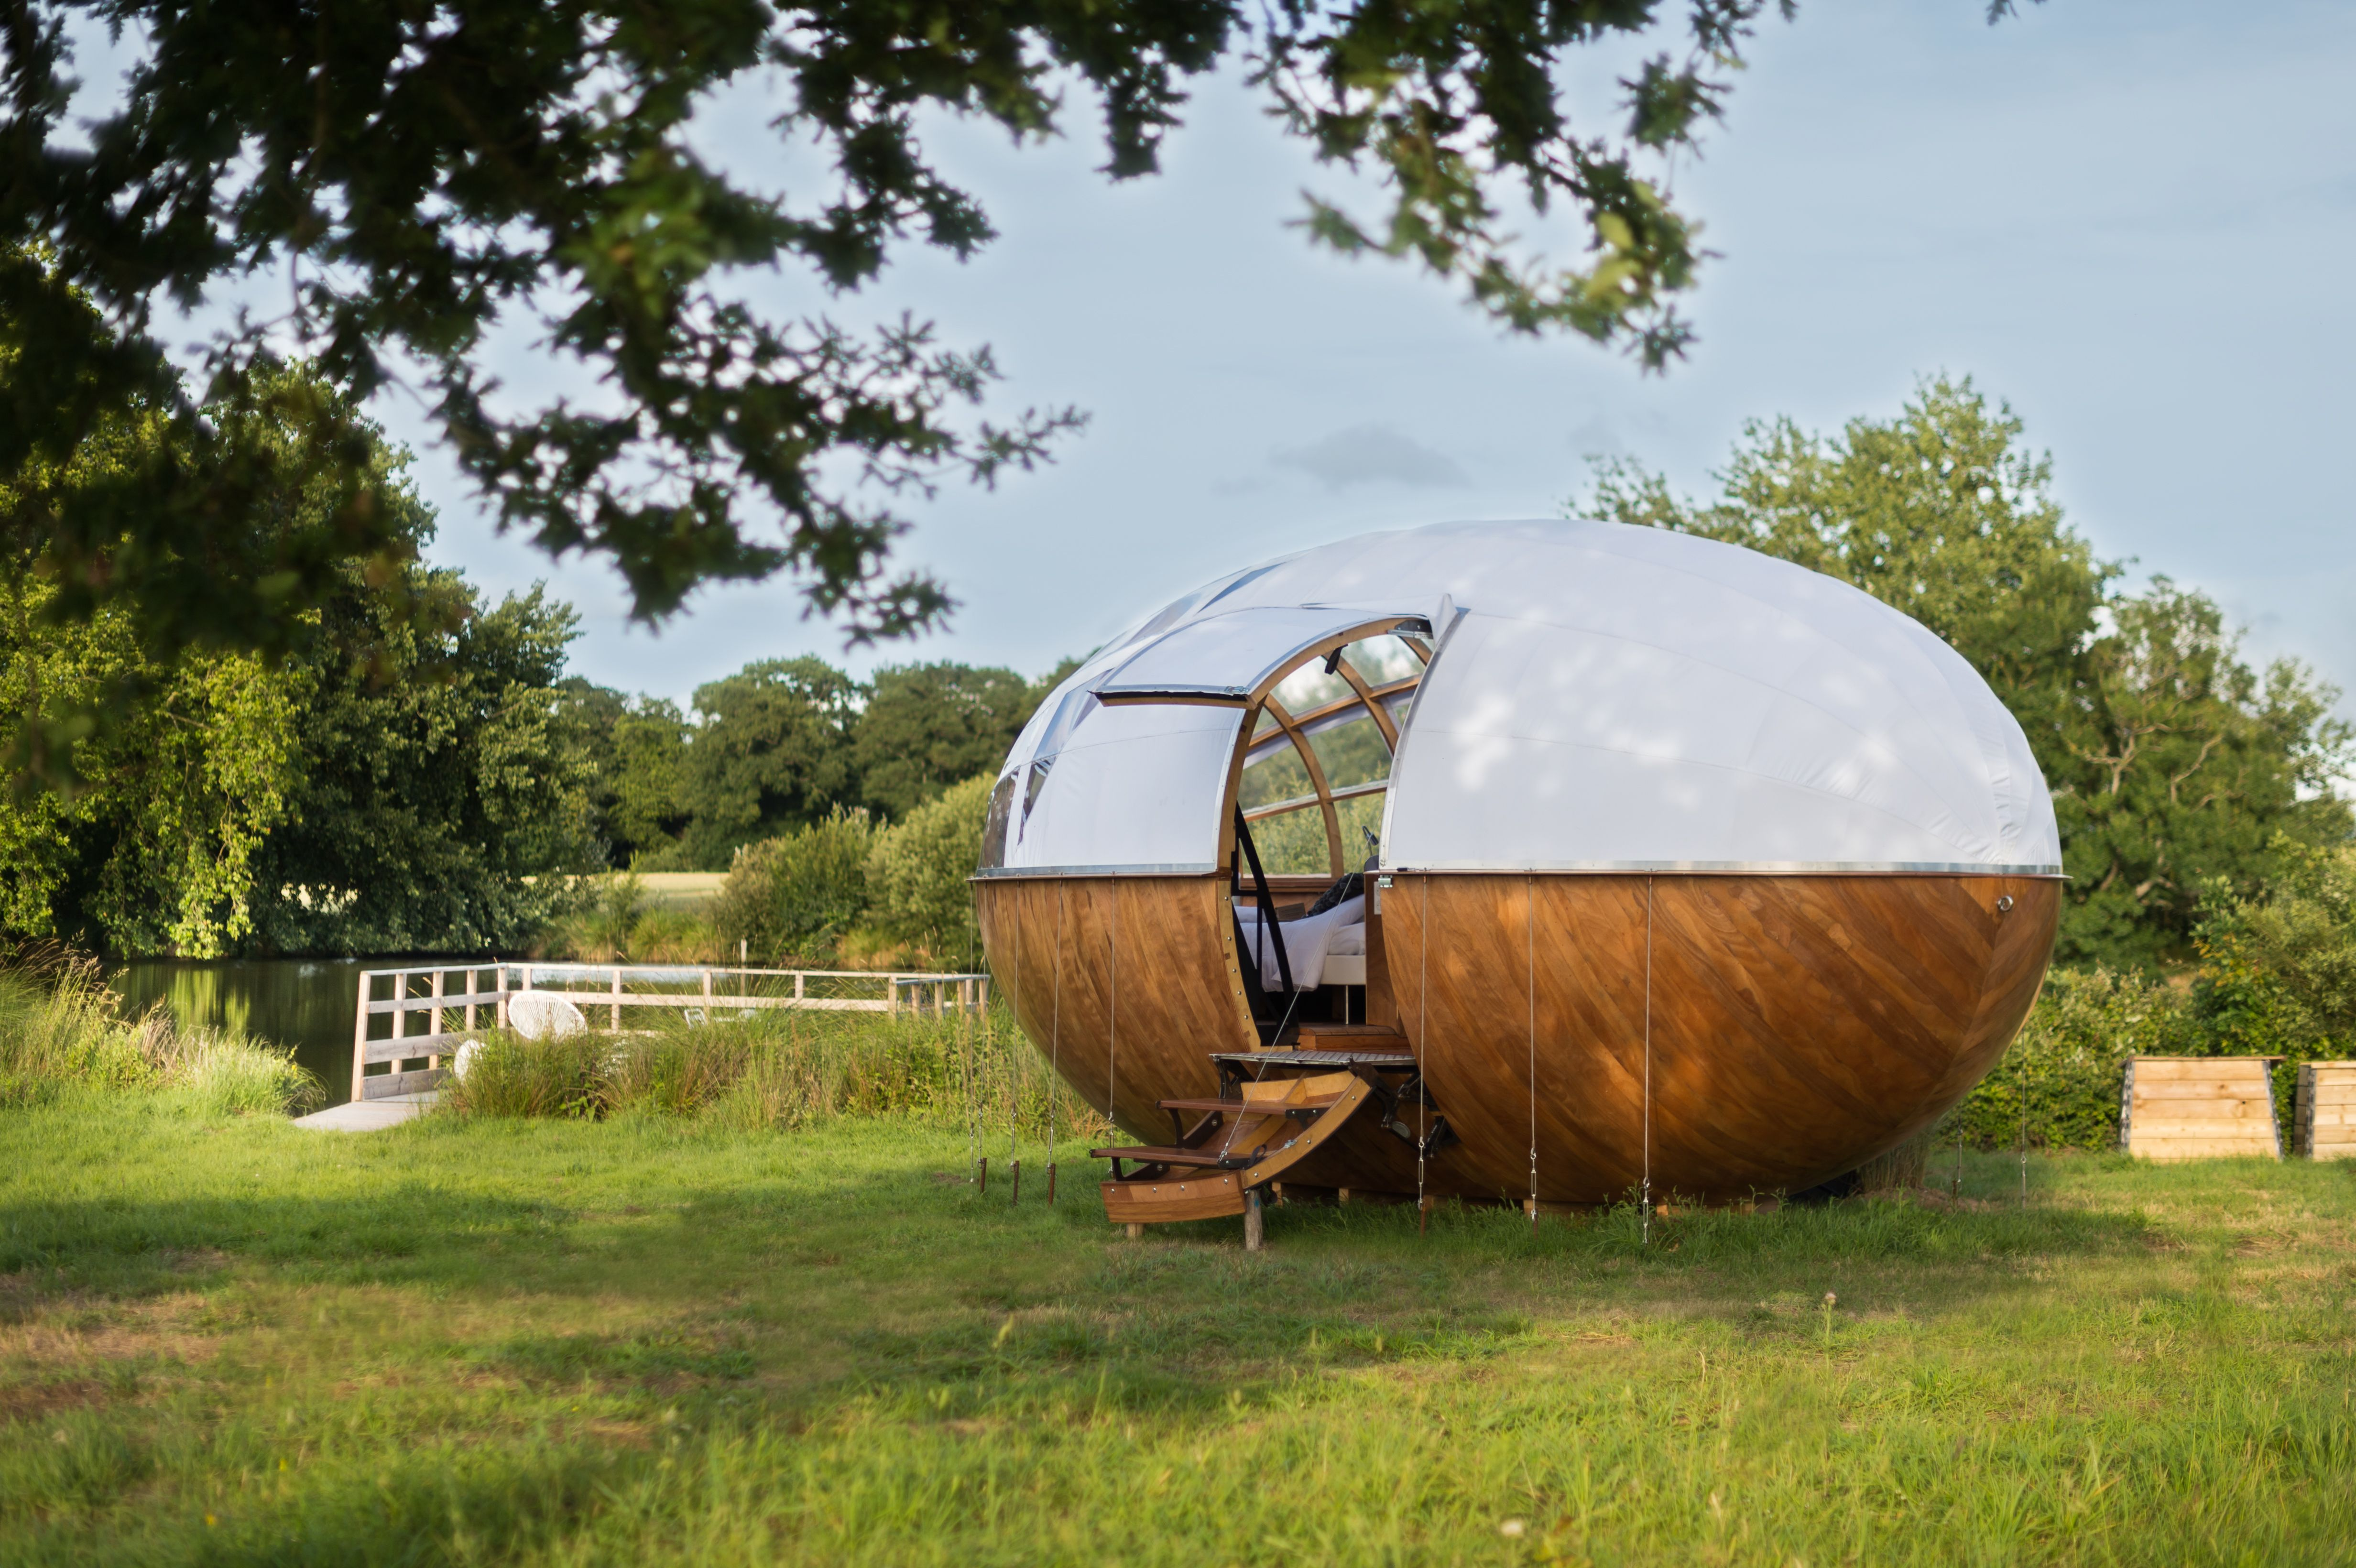 Photo 179 Of 1307 In Best Outdoor Photos From A Fantastic Egg Shaped  Camping Pod